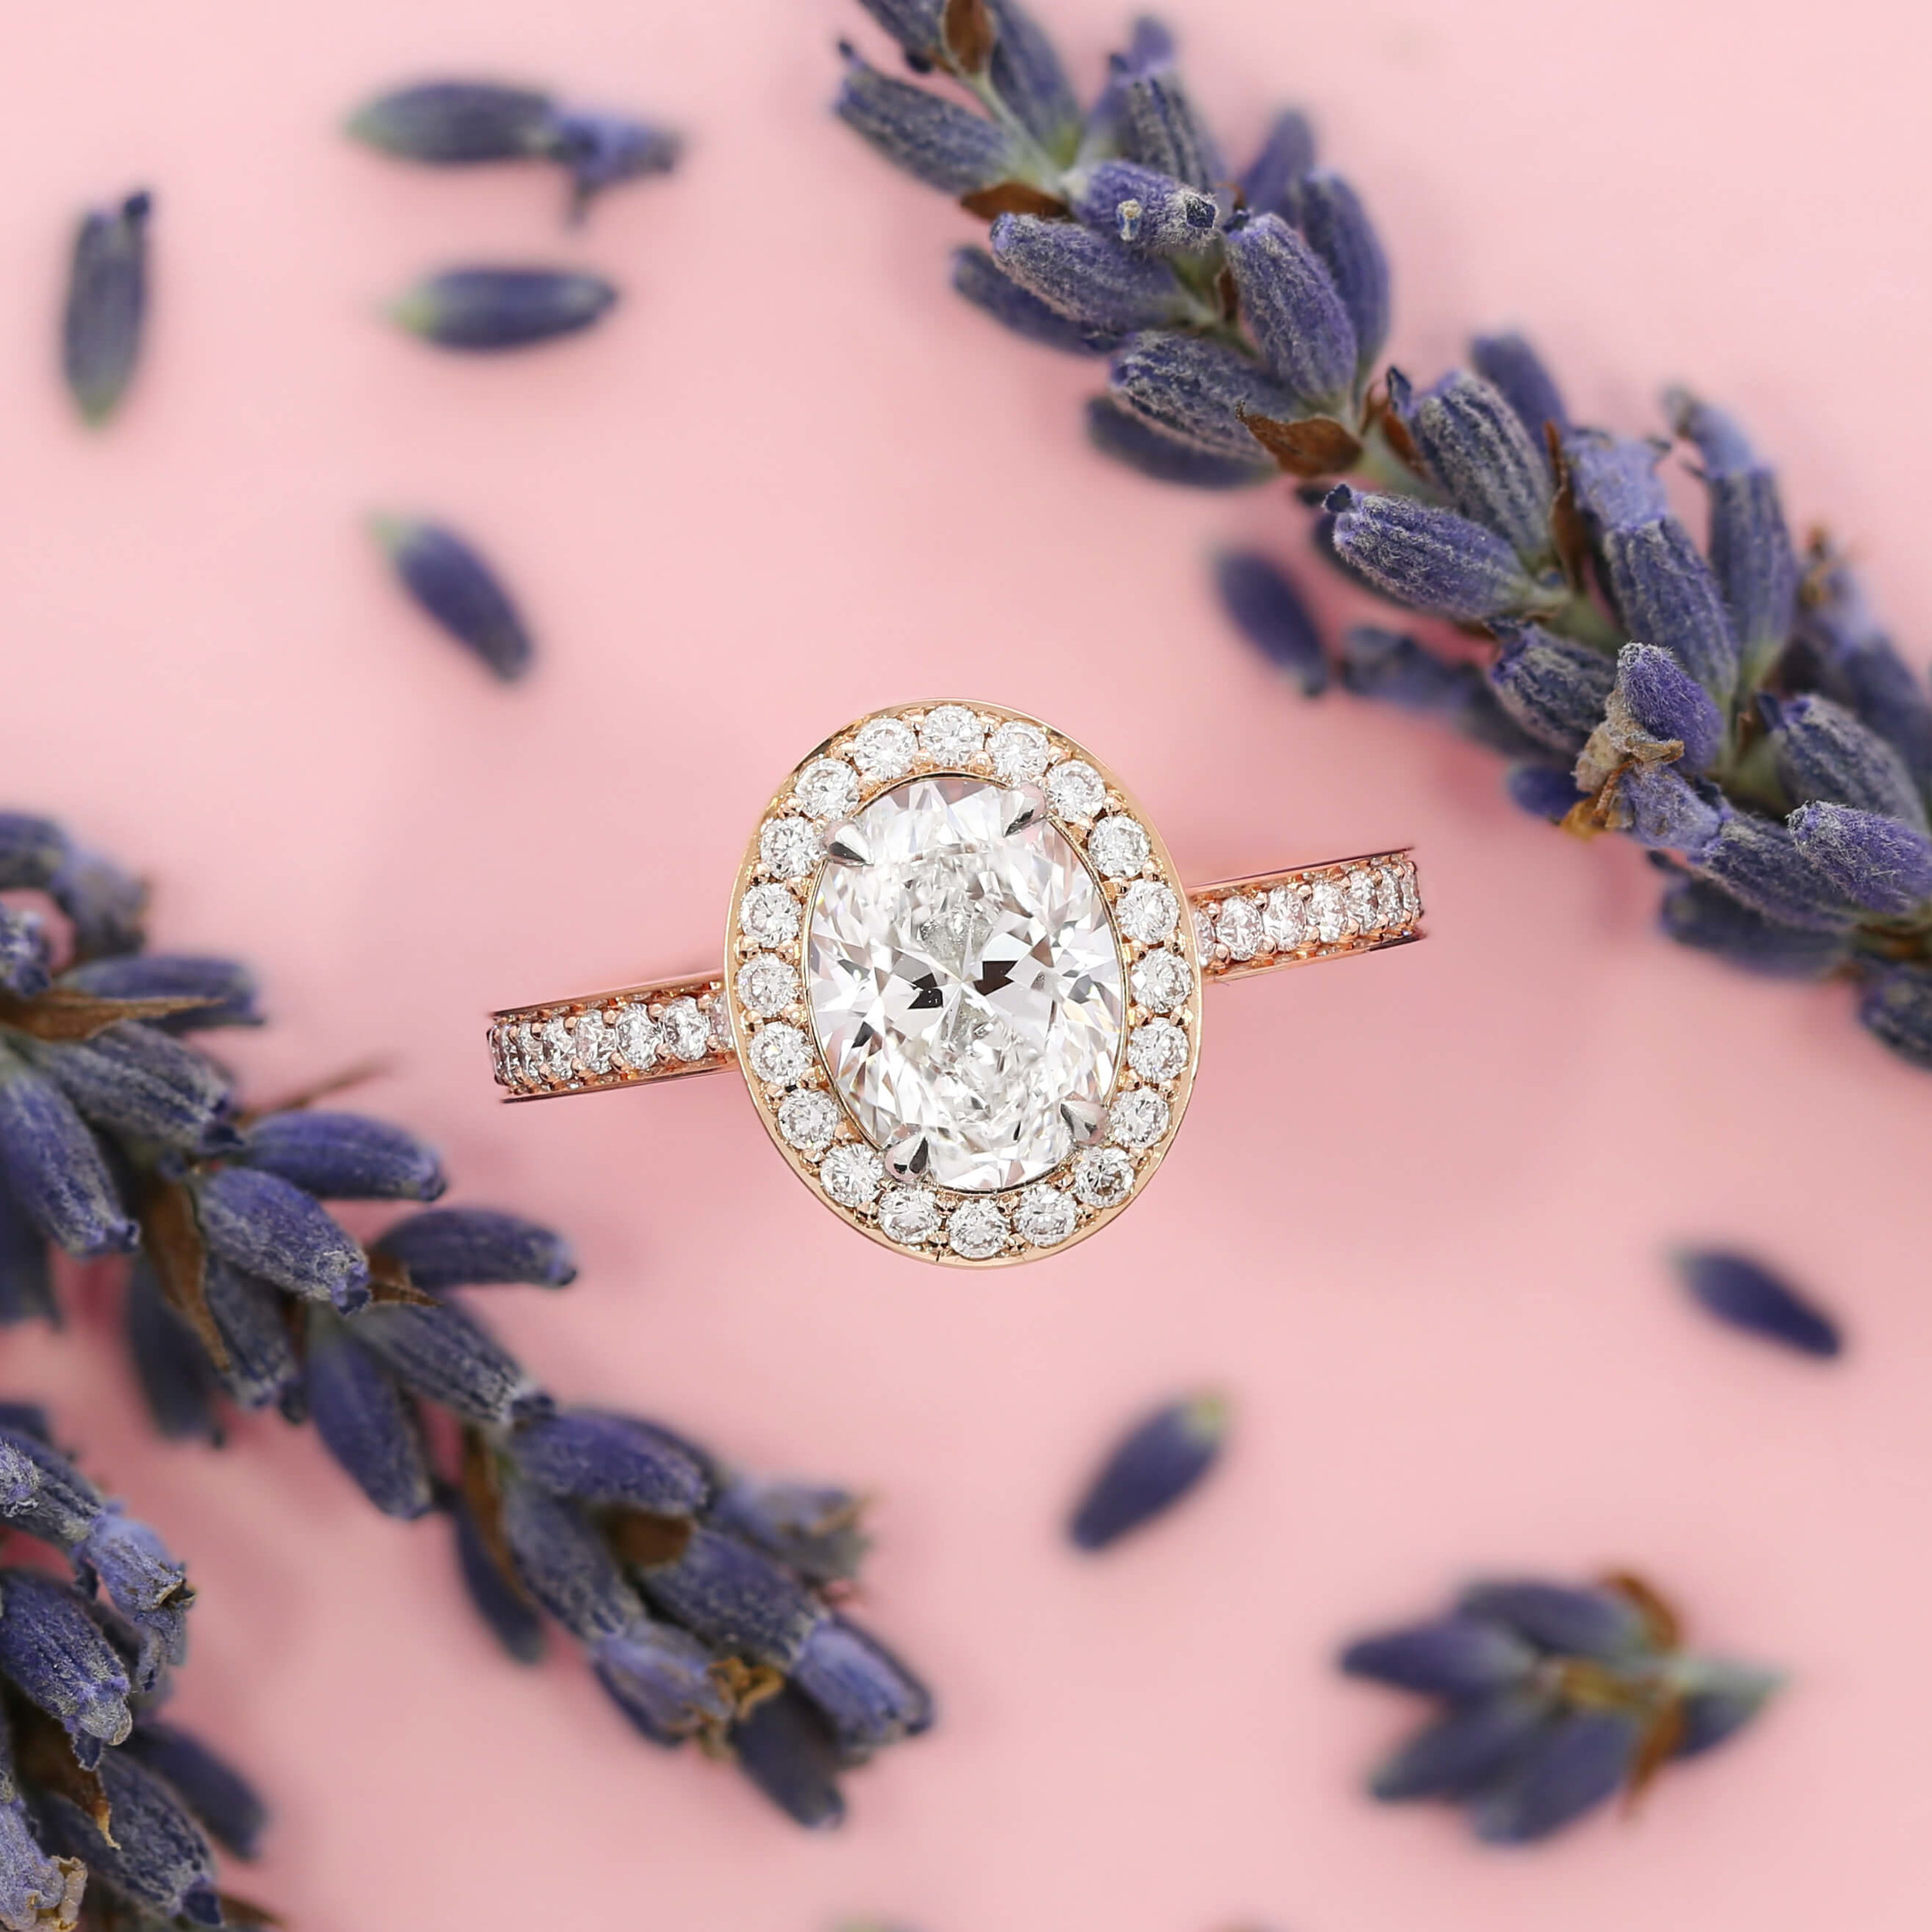 Queensmith's Bacall halo engagement ring with diamond pavé set shoulders in 18k Rose Gold